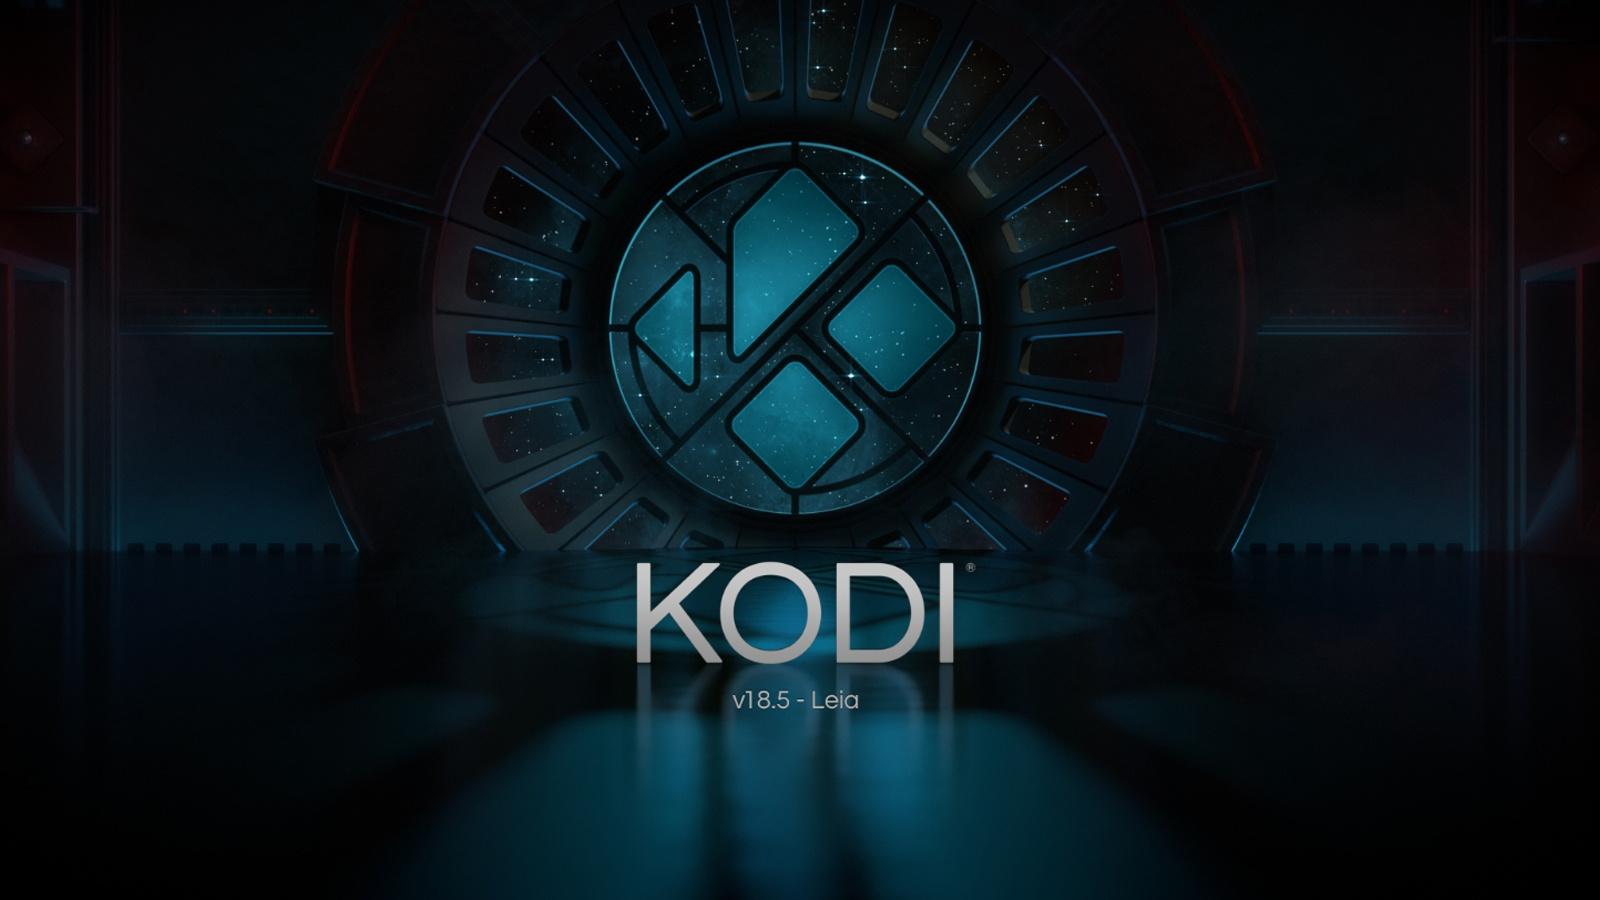 Best Kodi Repositories 2020.Kodi 18 5 Leia Now Available Performance Stability Bug